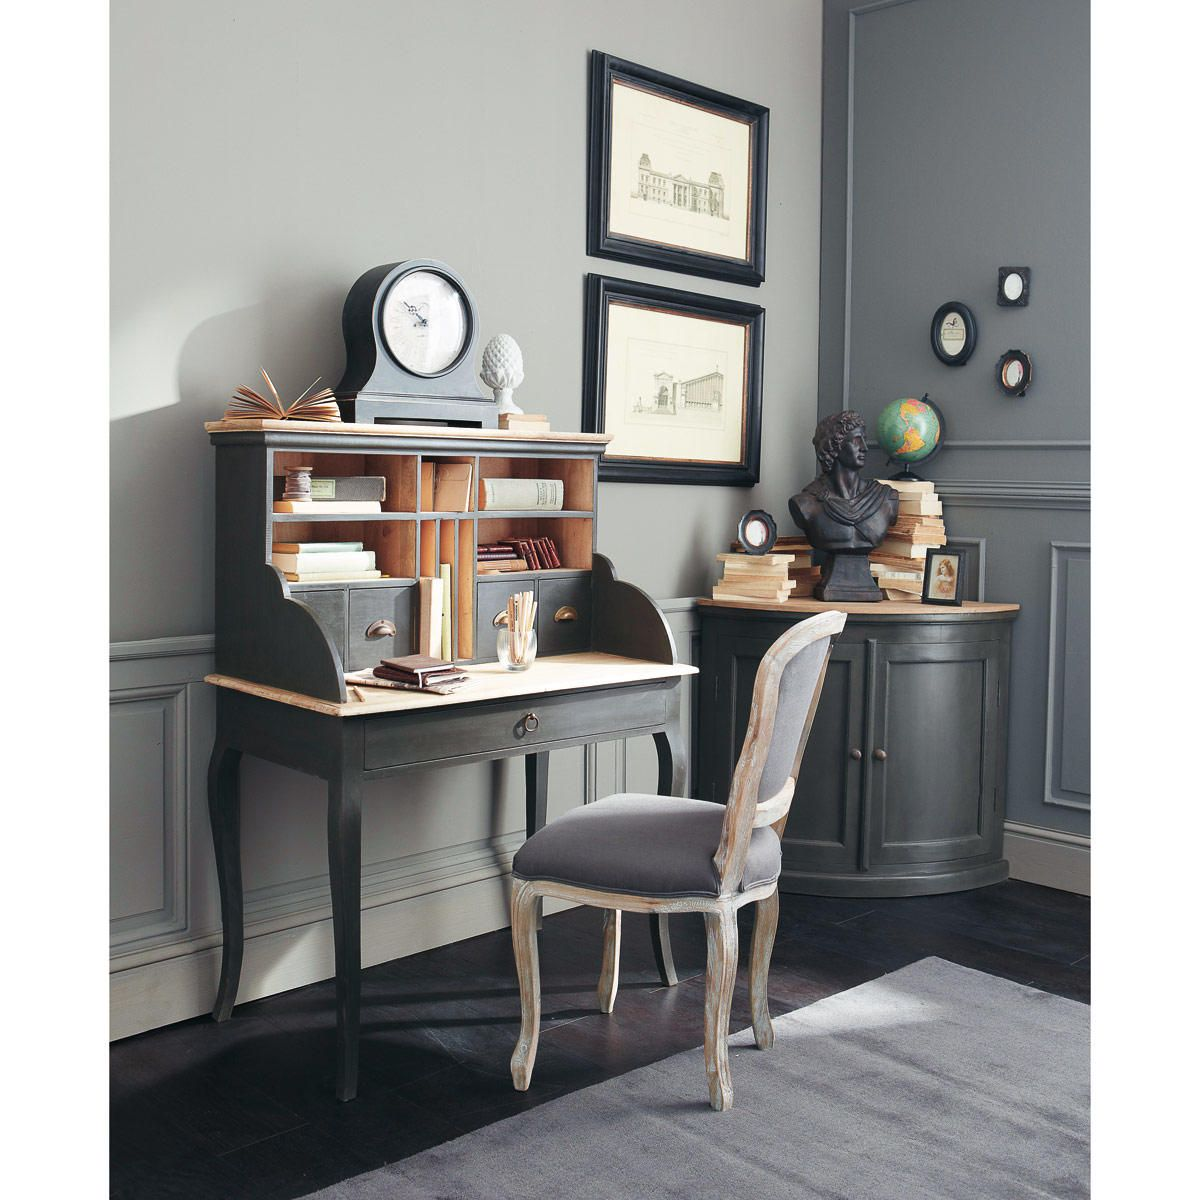 meuble d 39 angle gris chenonceau maisons du monde classic chic pinterest maison du monde. Black Bedroom Furniture Sets. Home Design Ideas